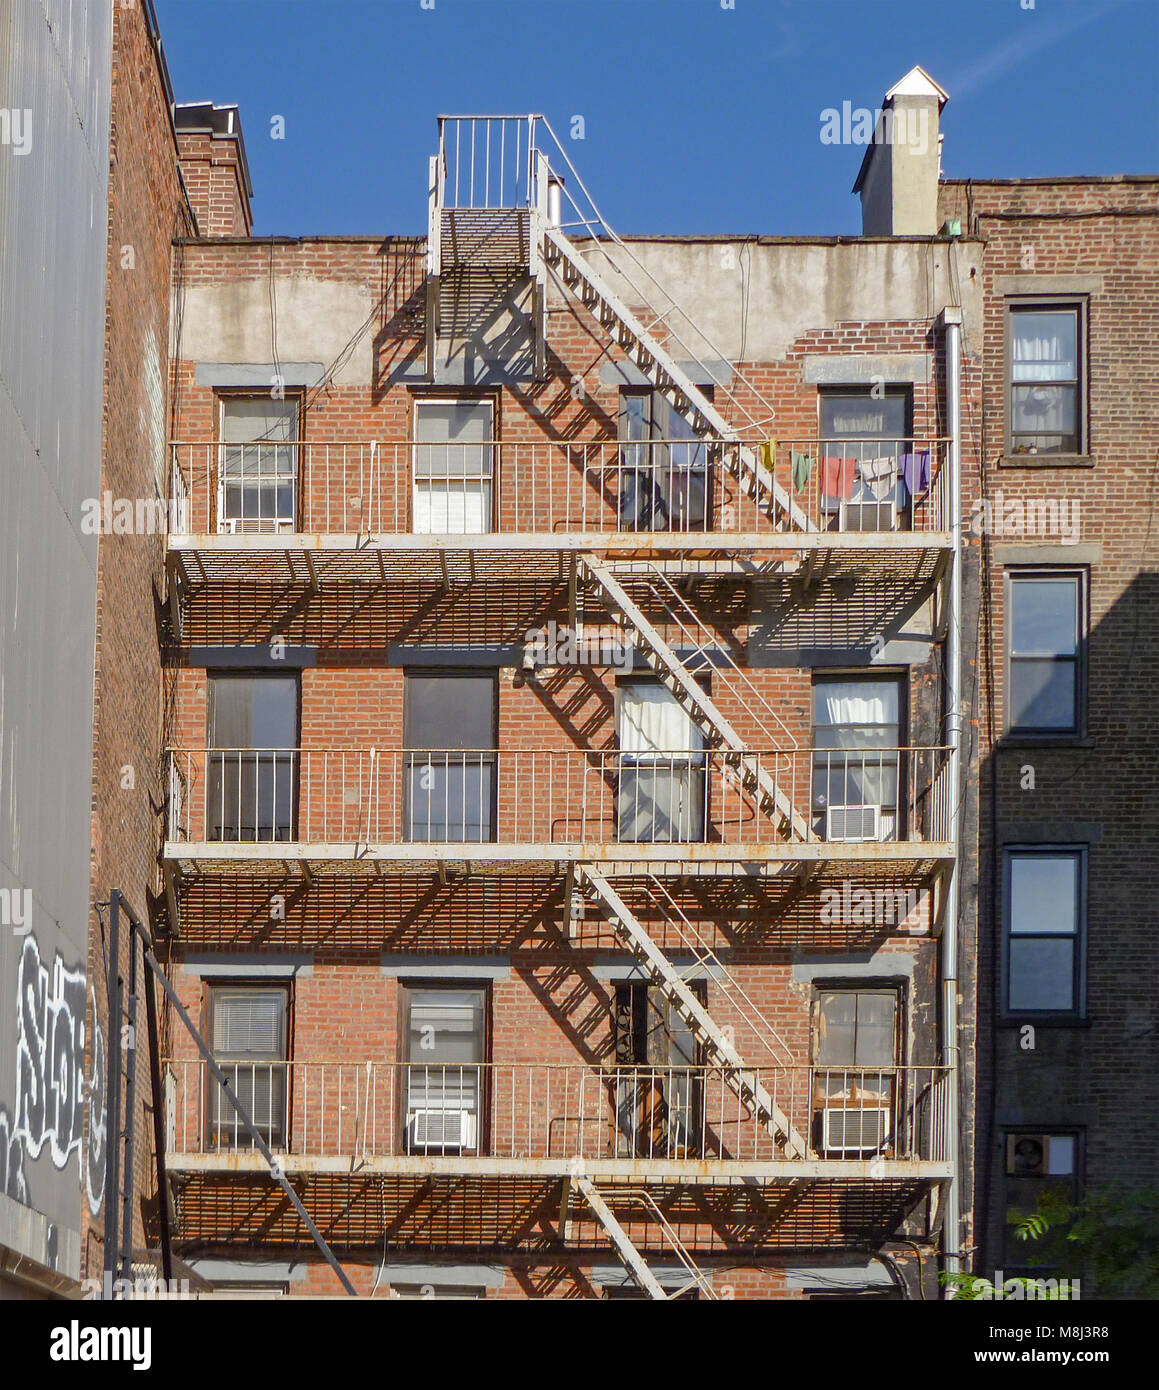 Fire Escape Of Small Old New York City Apartment Building   Stock Image